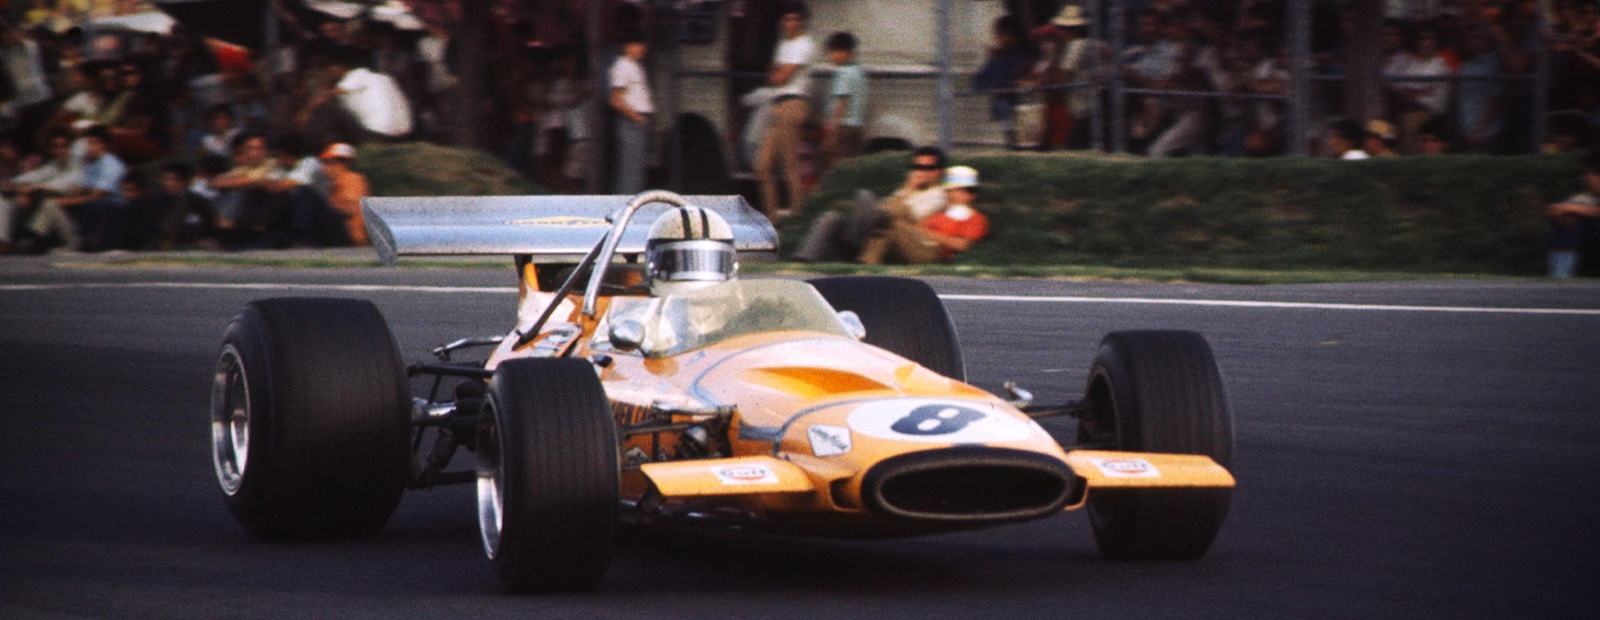 Mclaren Formula 1 Once Upon A Time In Mexico